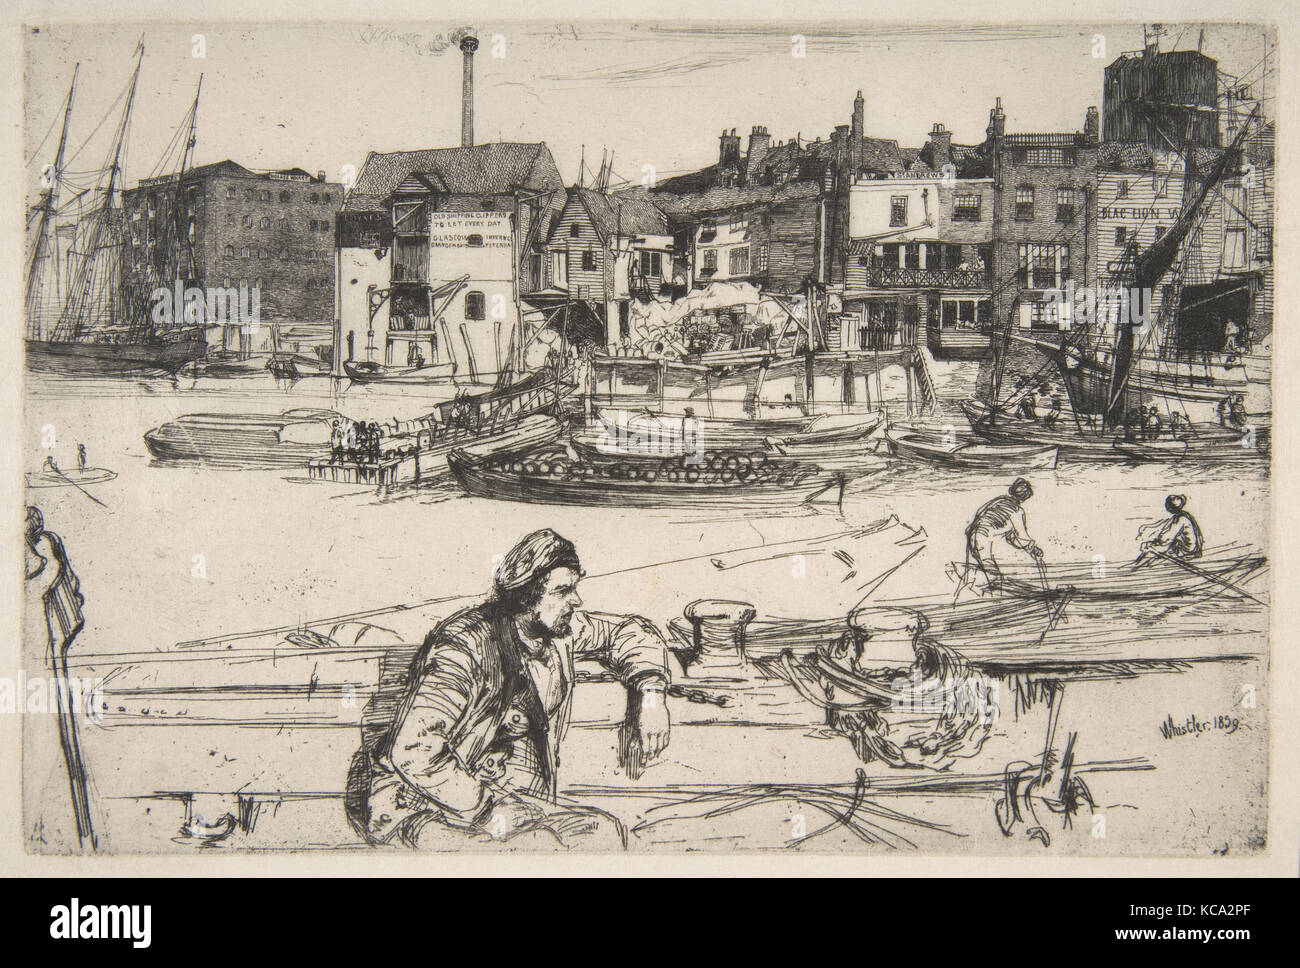 Black Lion Wharf, 1859, Etching; fourth state of four (Glasgow), printed in black ink on fine off-white laid Japan - Stock Image